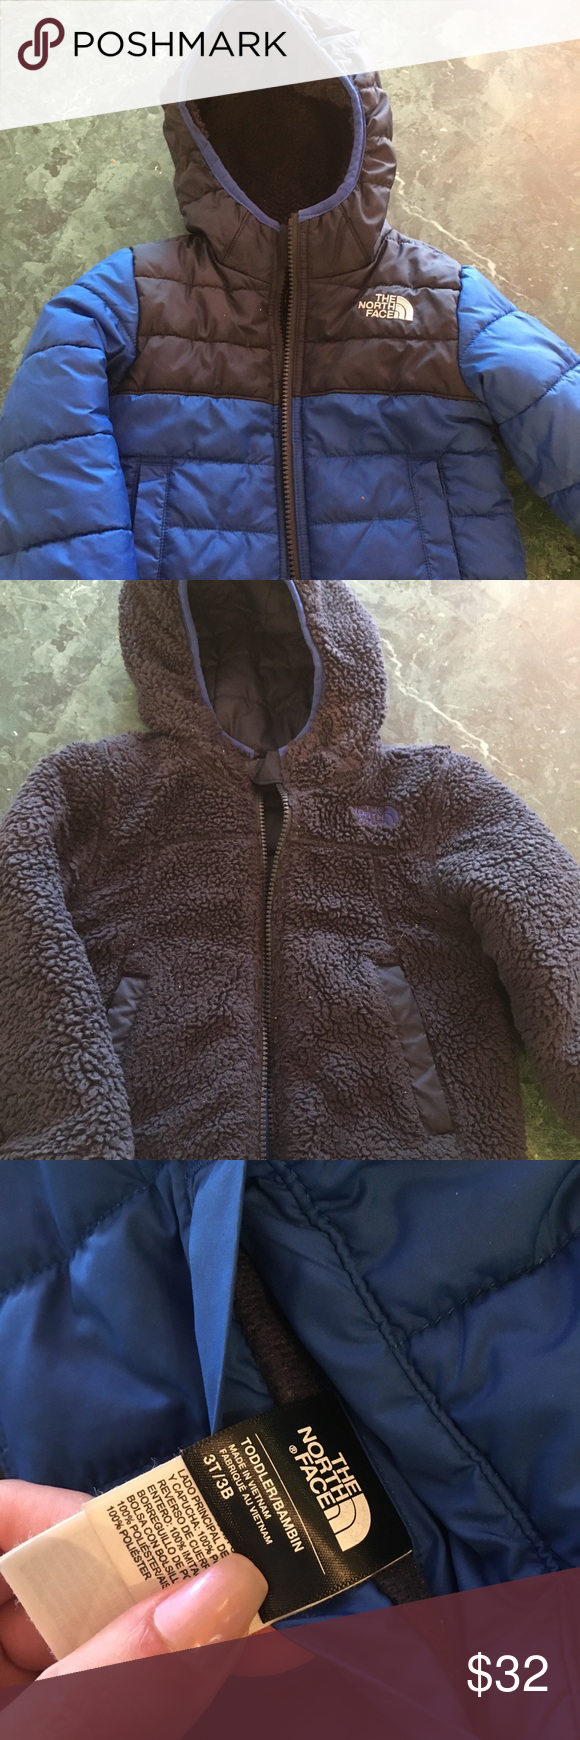 North Face Jacket Child S Size 3t North Face Reversible Jacket The North Face Jackets Coats North Face Jacket Clothes Design Jackets [ 1740 x 580 Pixel ]